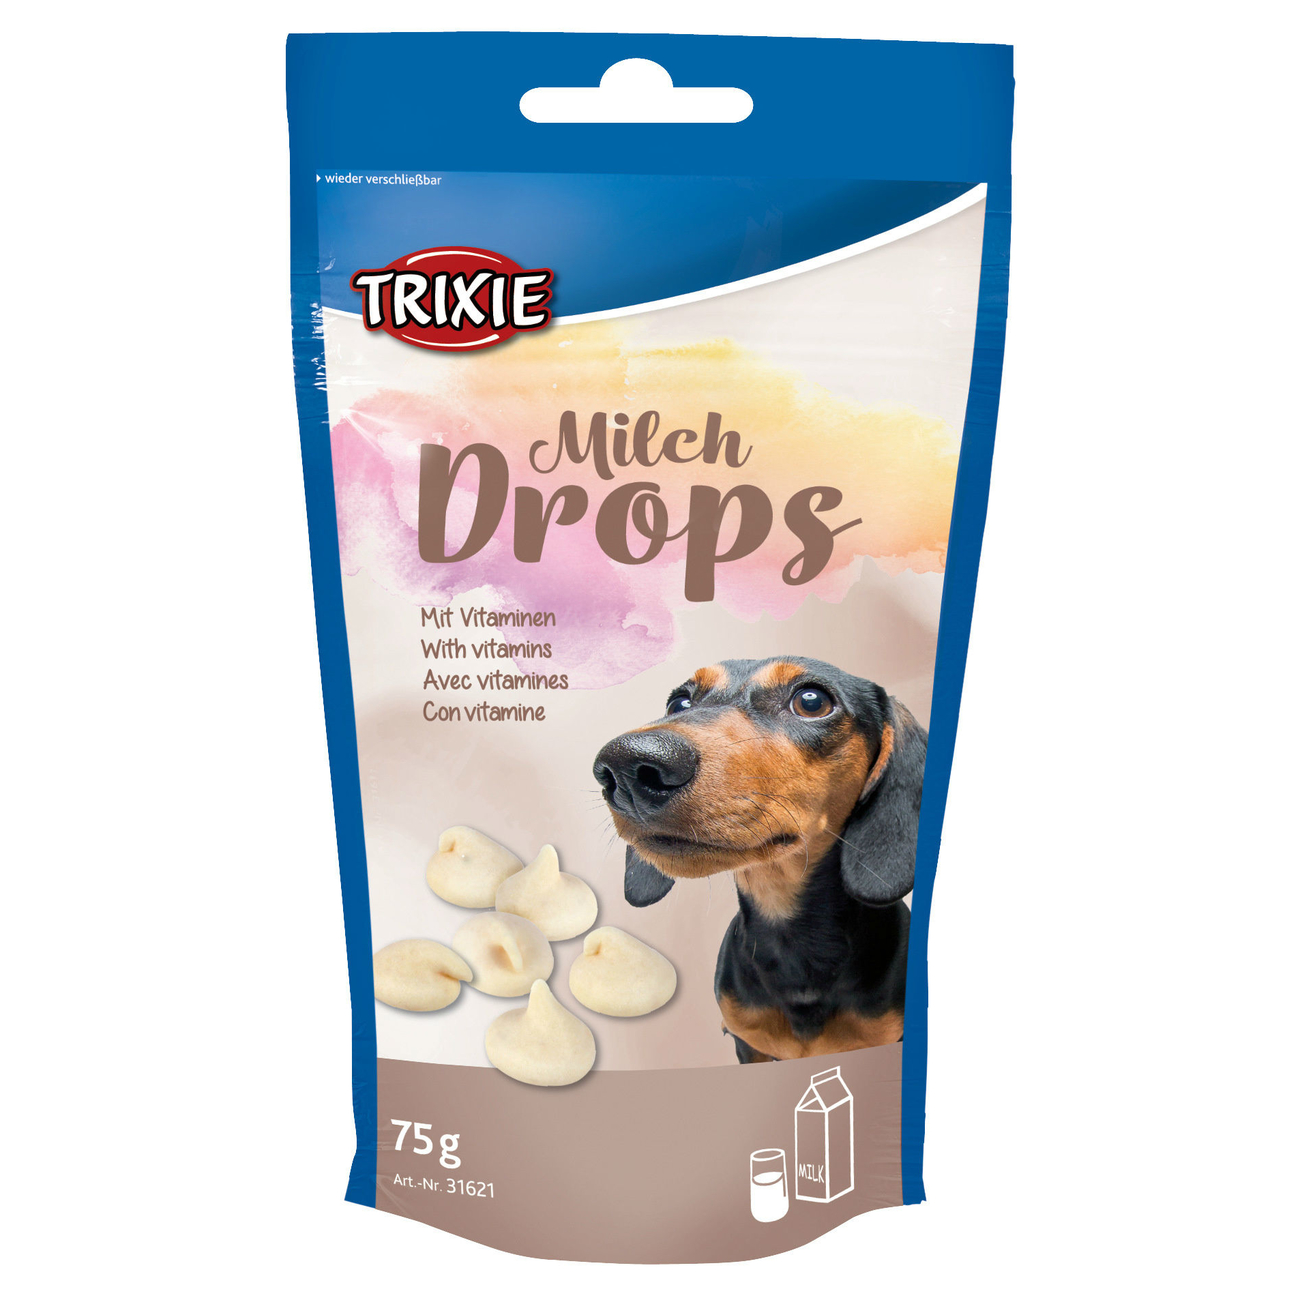 TRIXIE Hunde Milch-Drops 31621